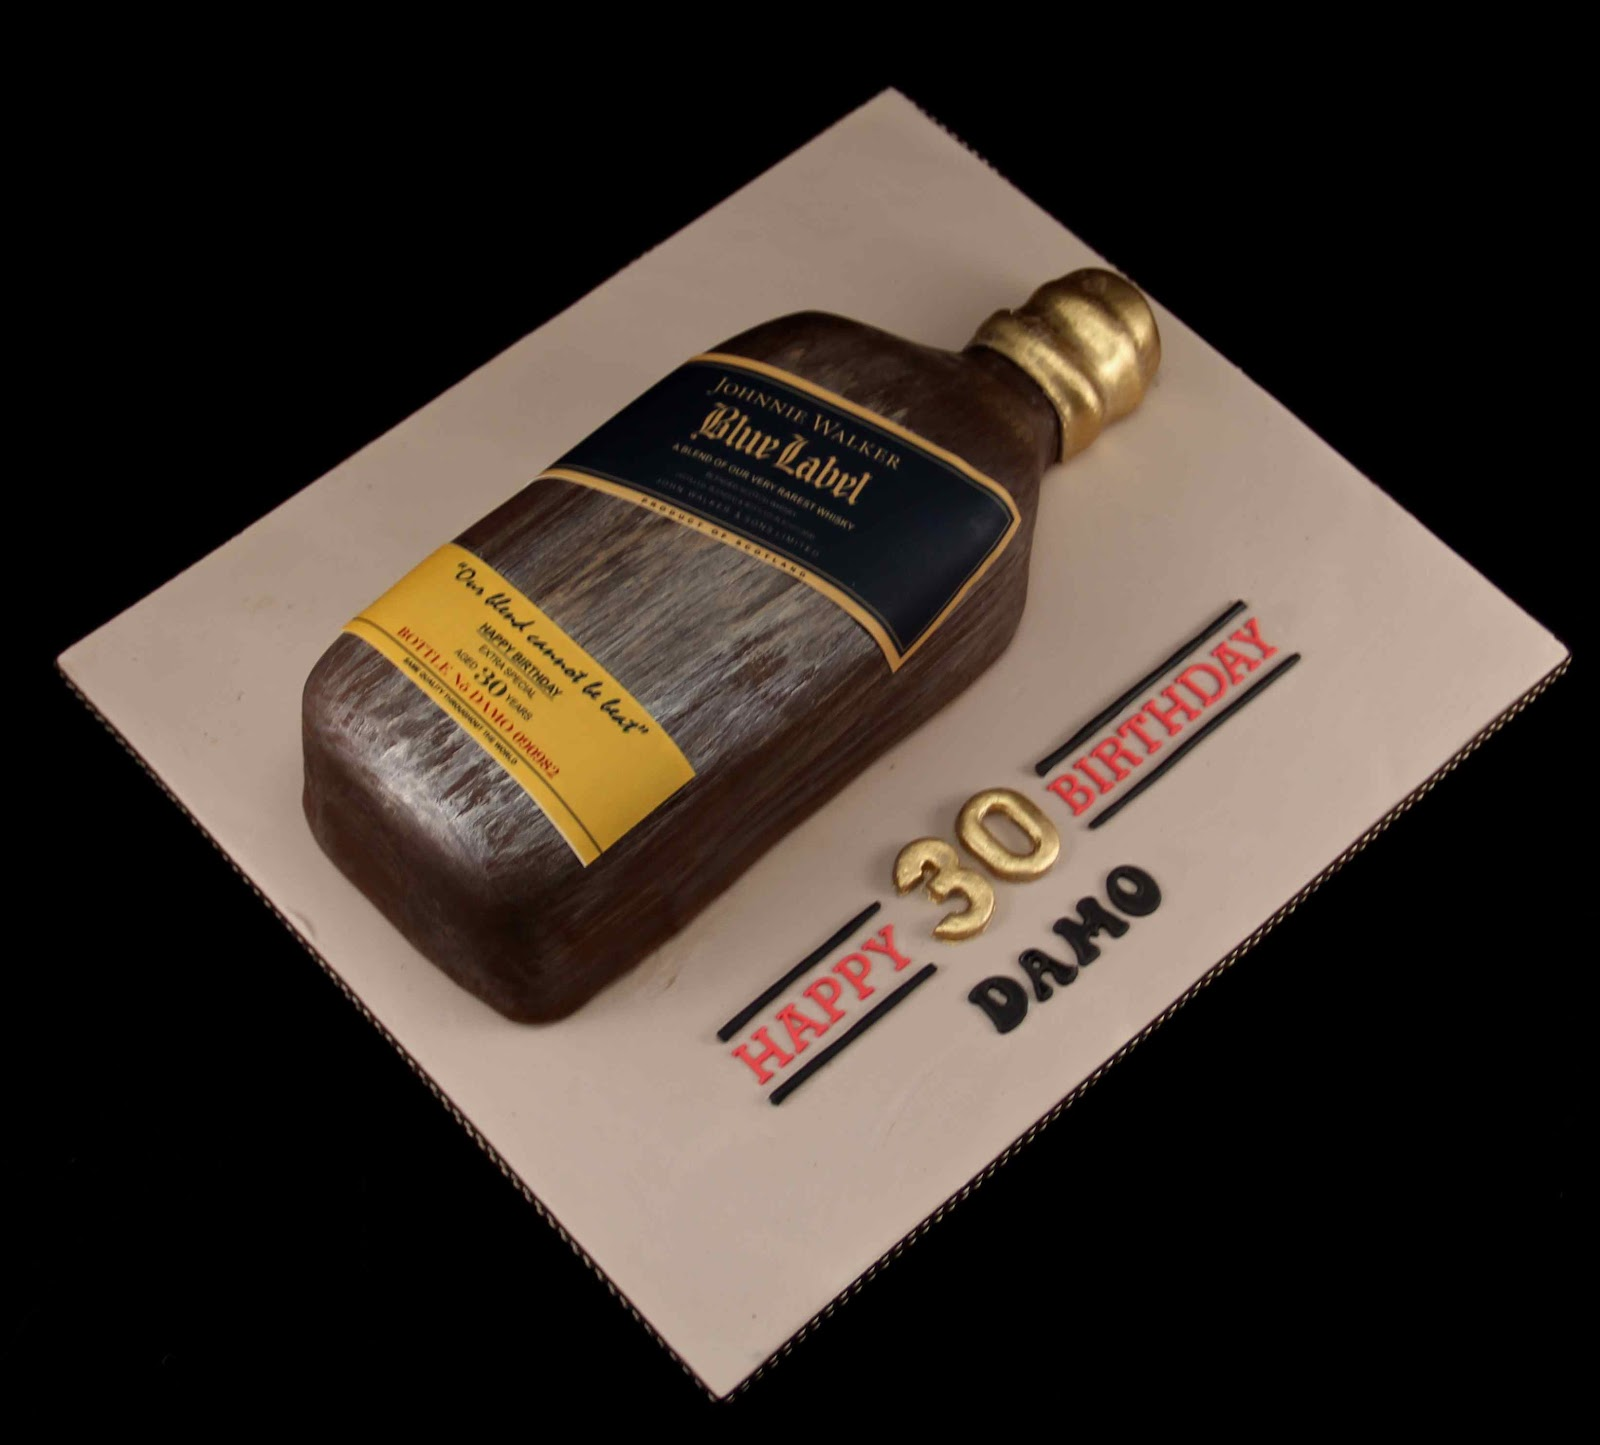 Johnnie Walker Blue Label Cake http://www.pelauts.com/logotipo/logotipo-johnnie-walker.html